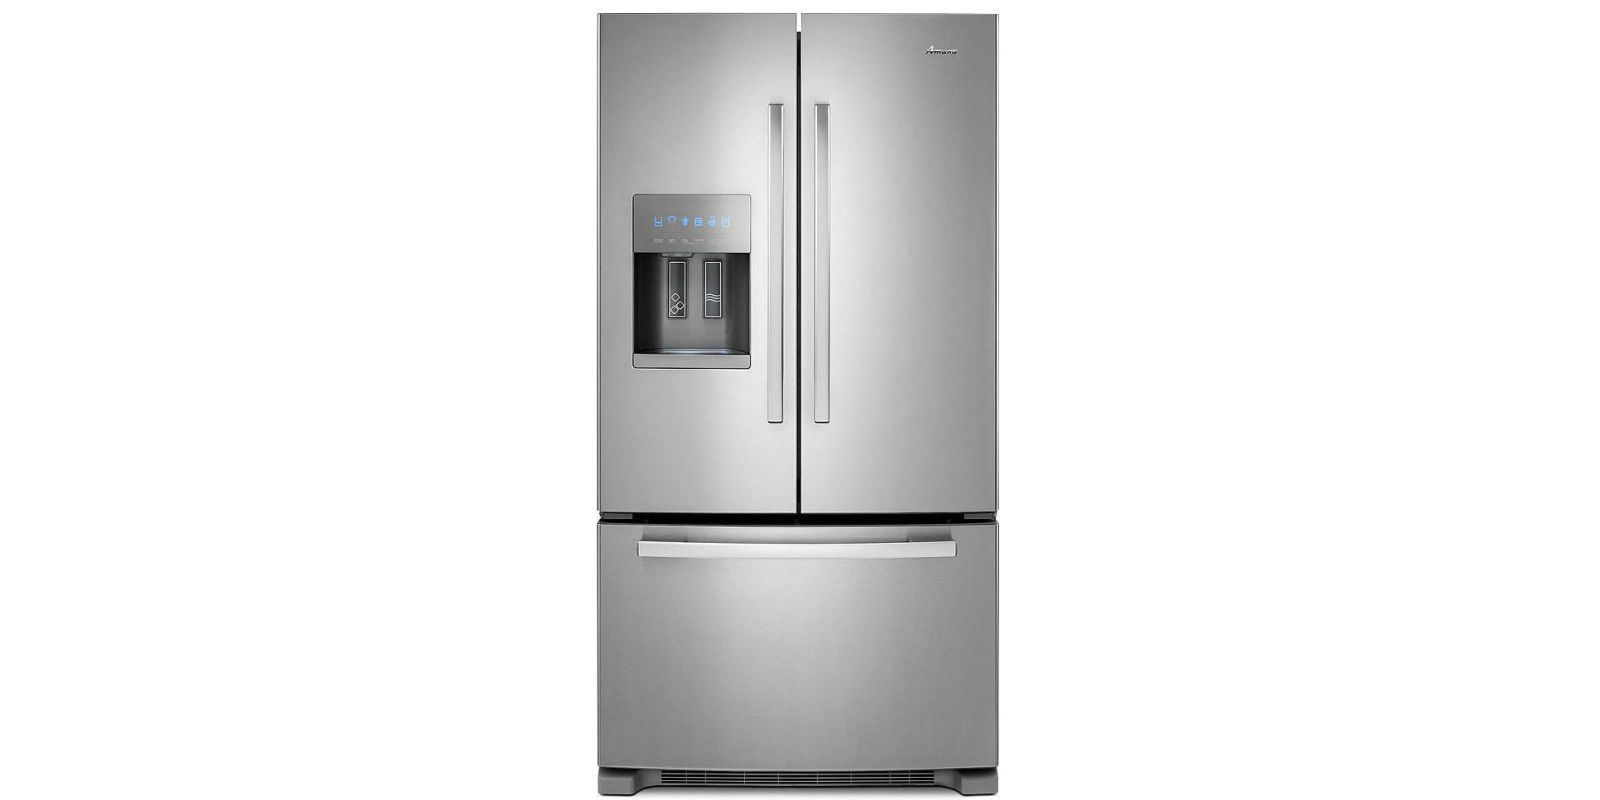 Genial Refrigerator Reviews